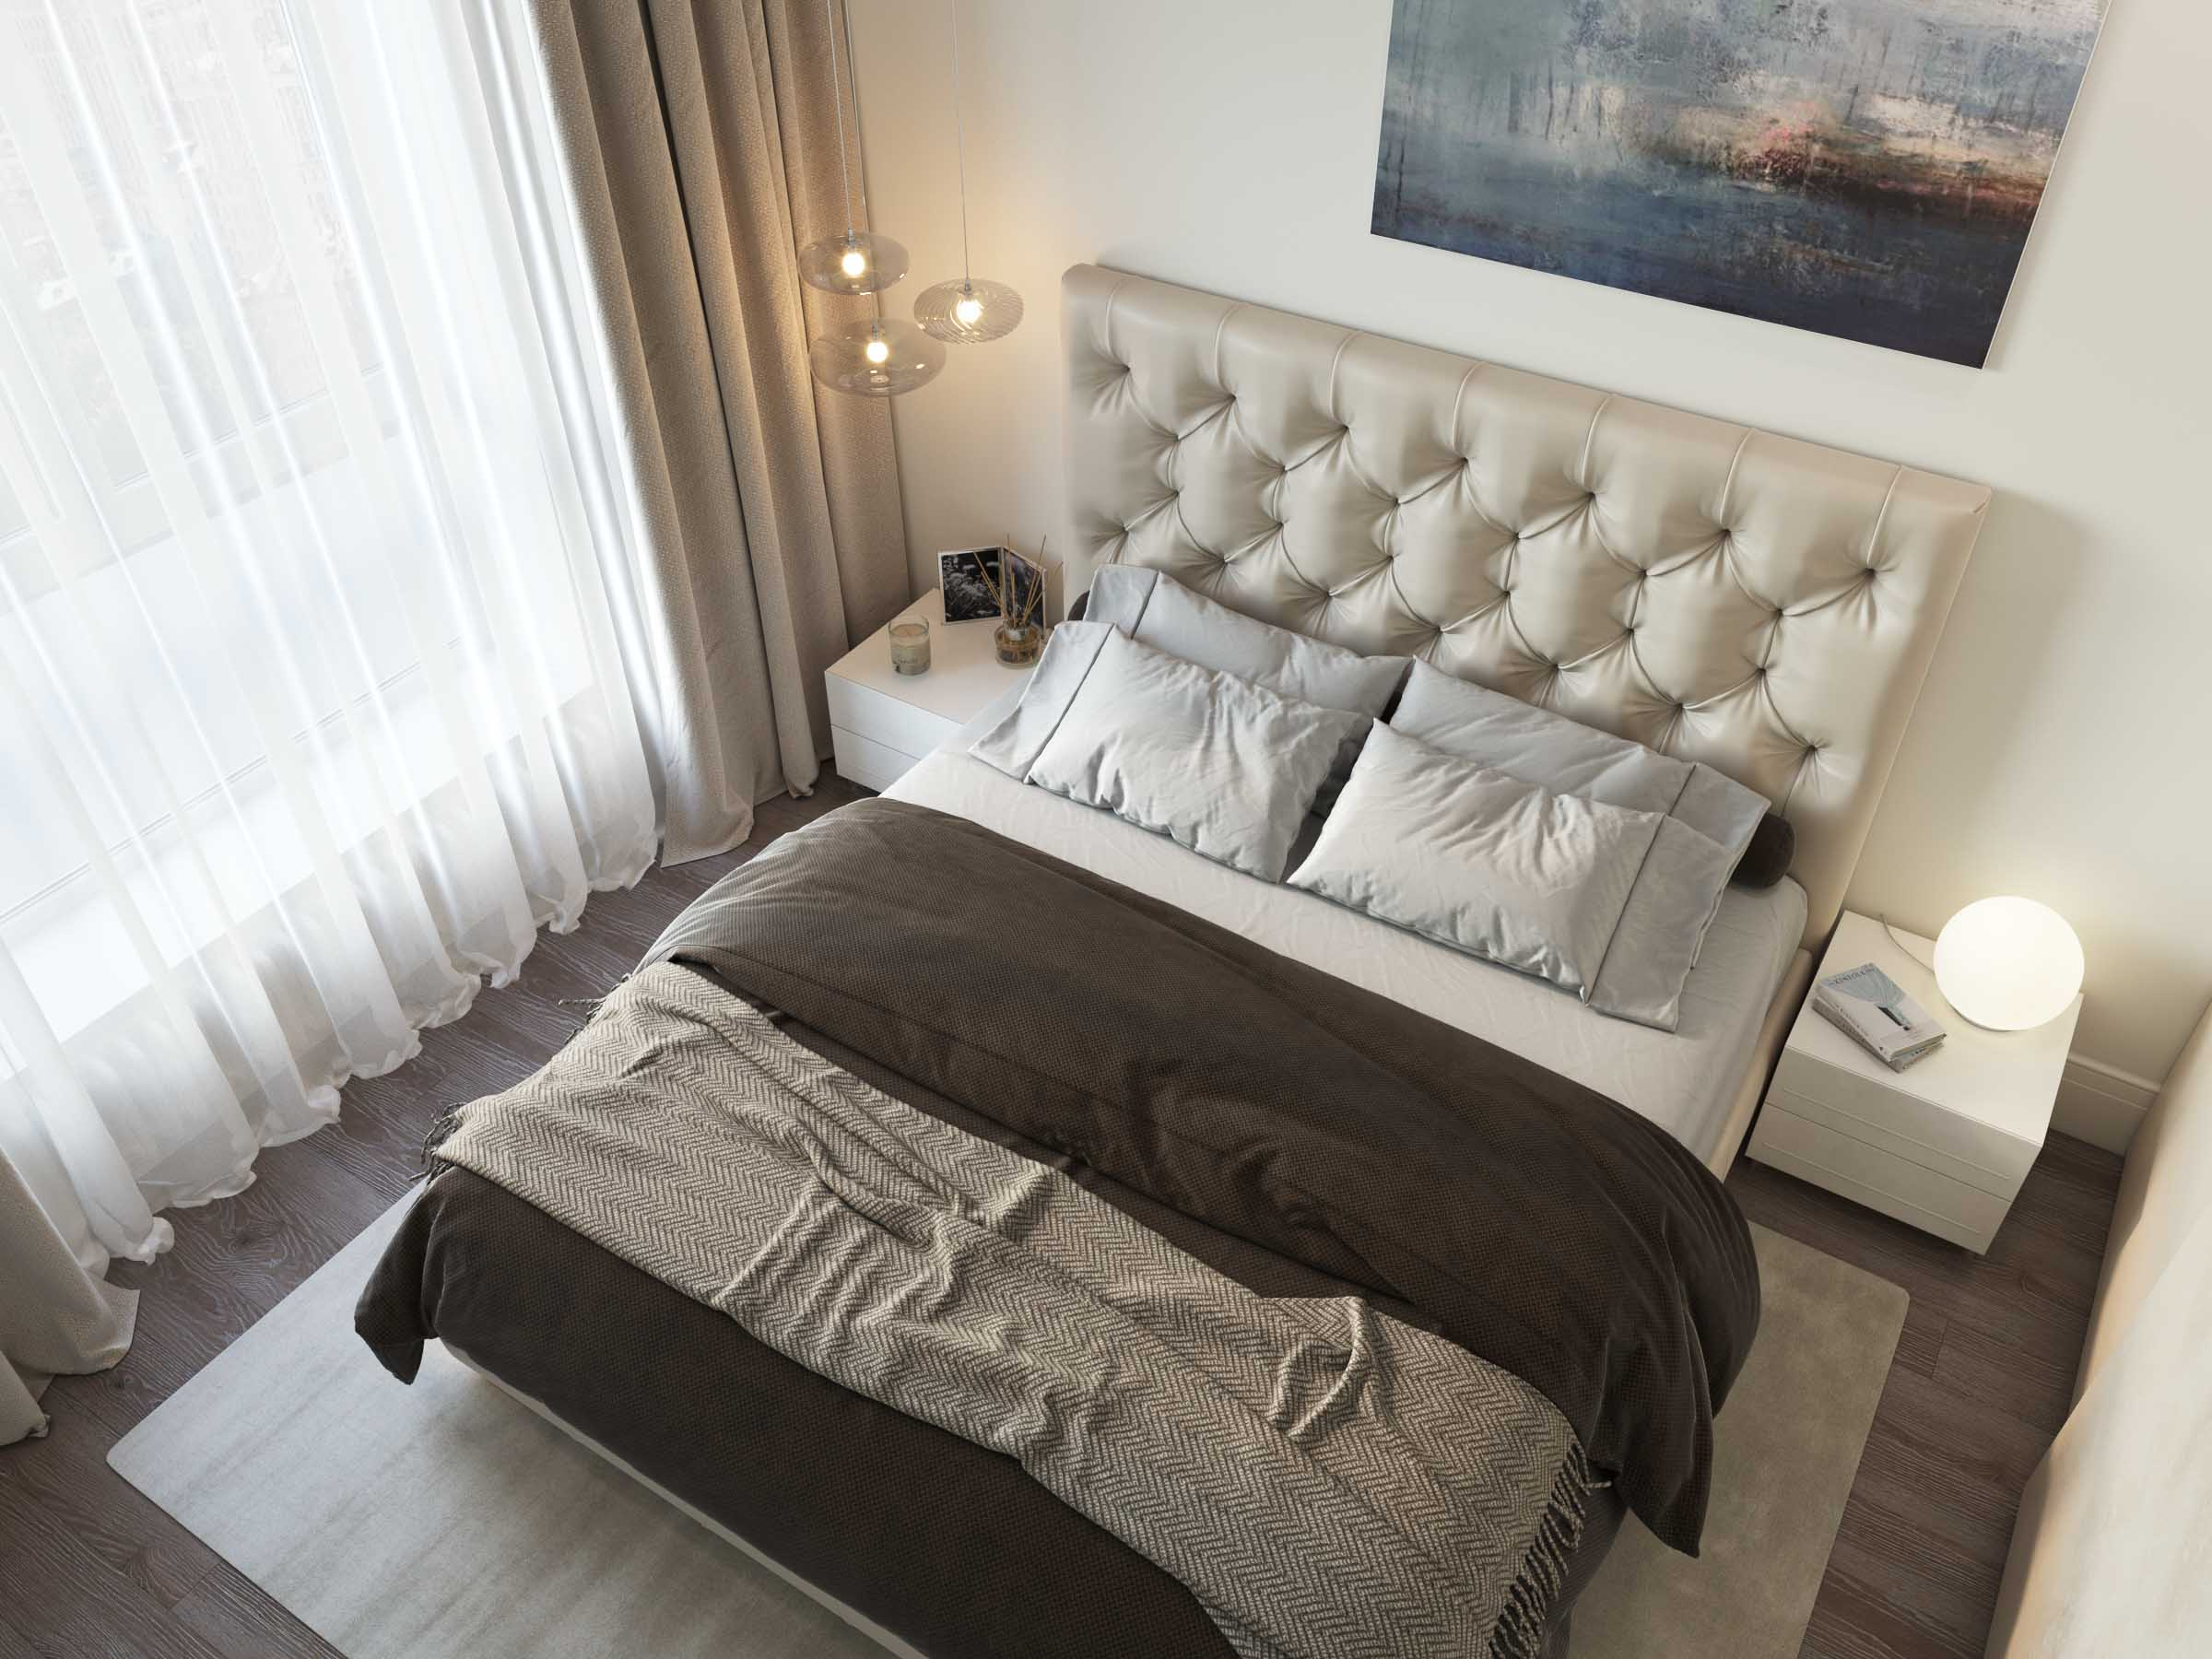 Master bedroom interior design by Lera Bykova